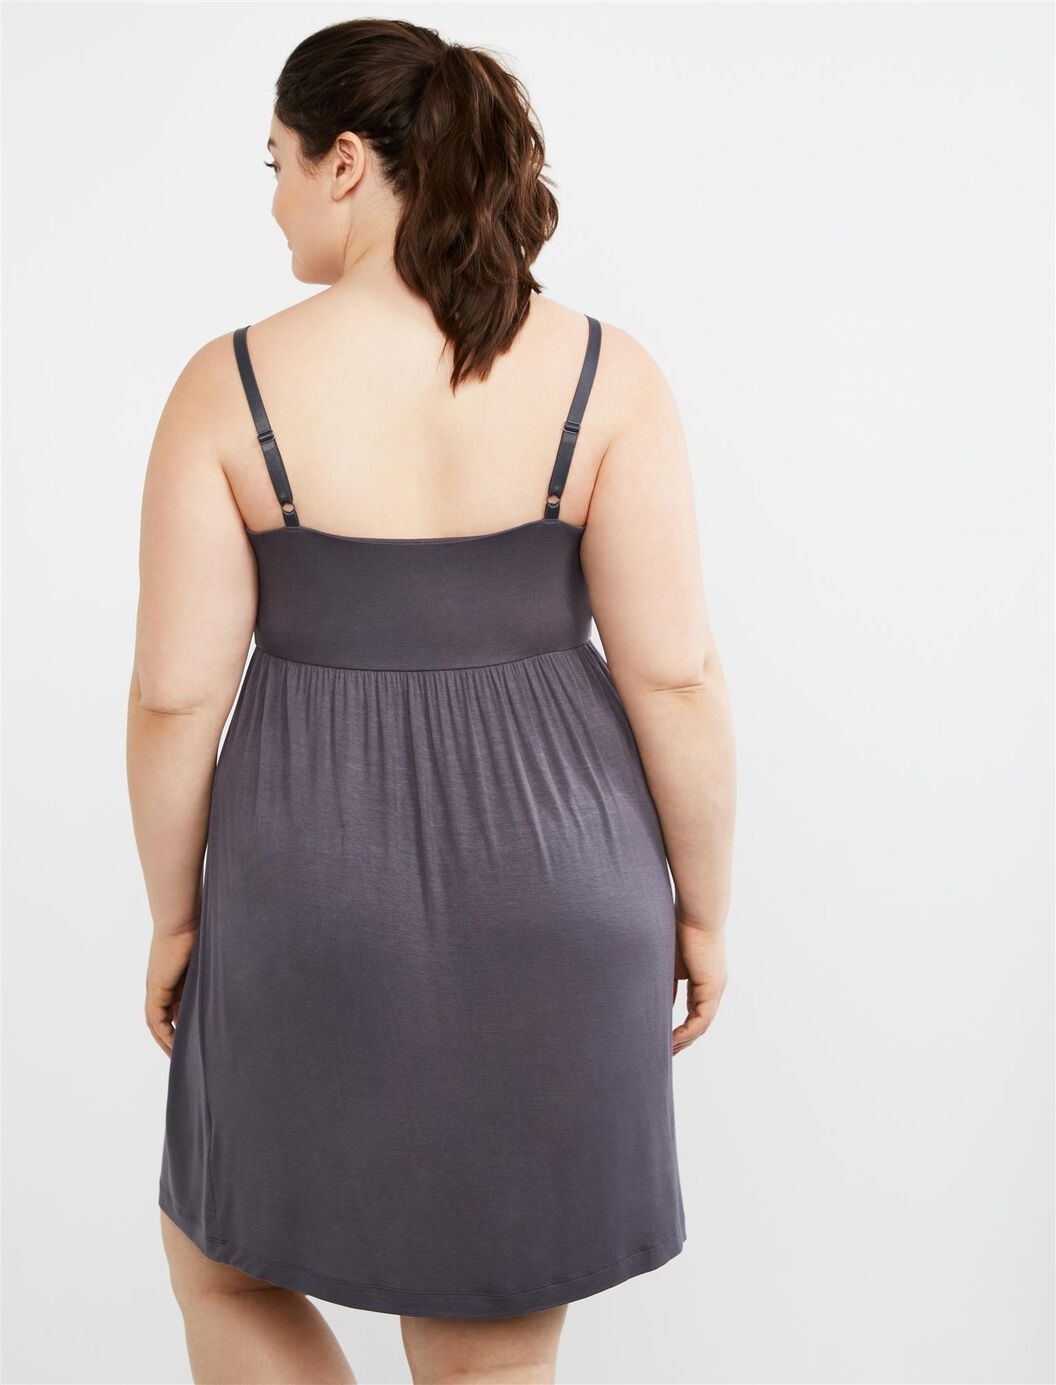 Shop for plus size nursing nightgown online at Target. Free shipping on purchases over $35 and save 5% every day with your Target REDcard.